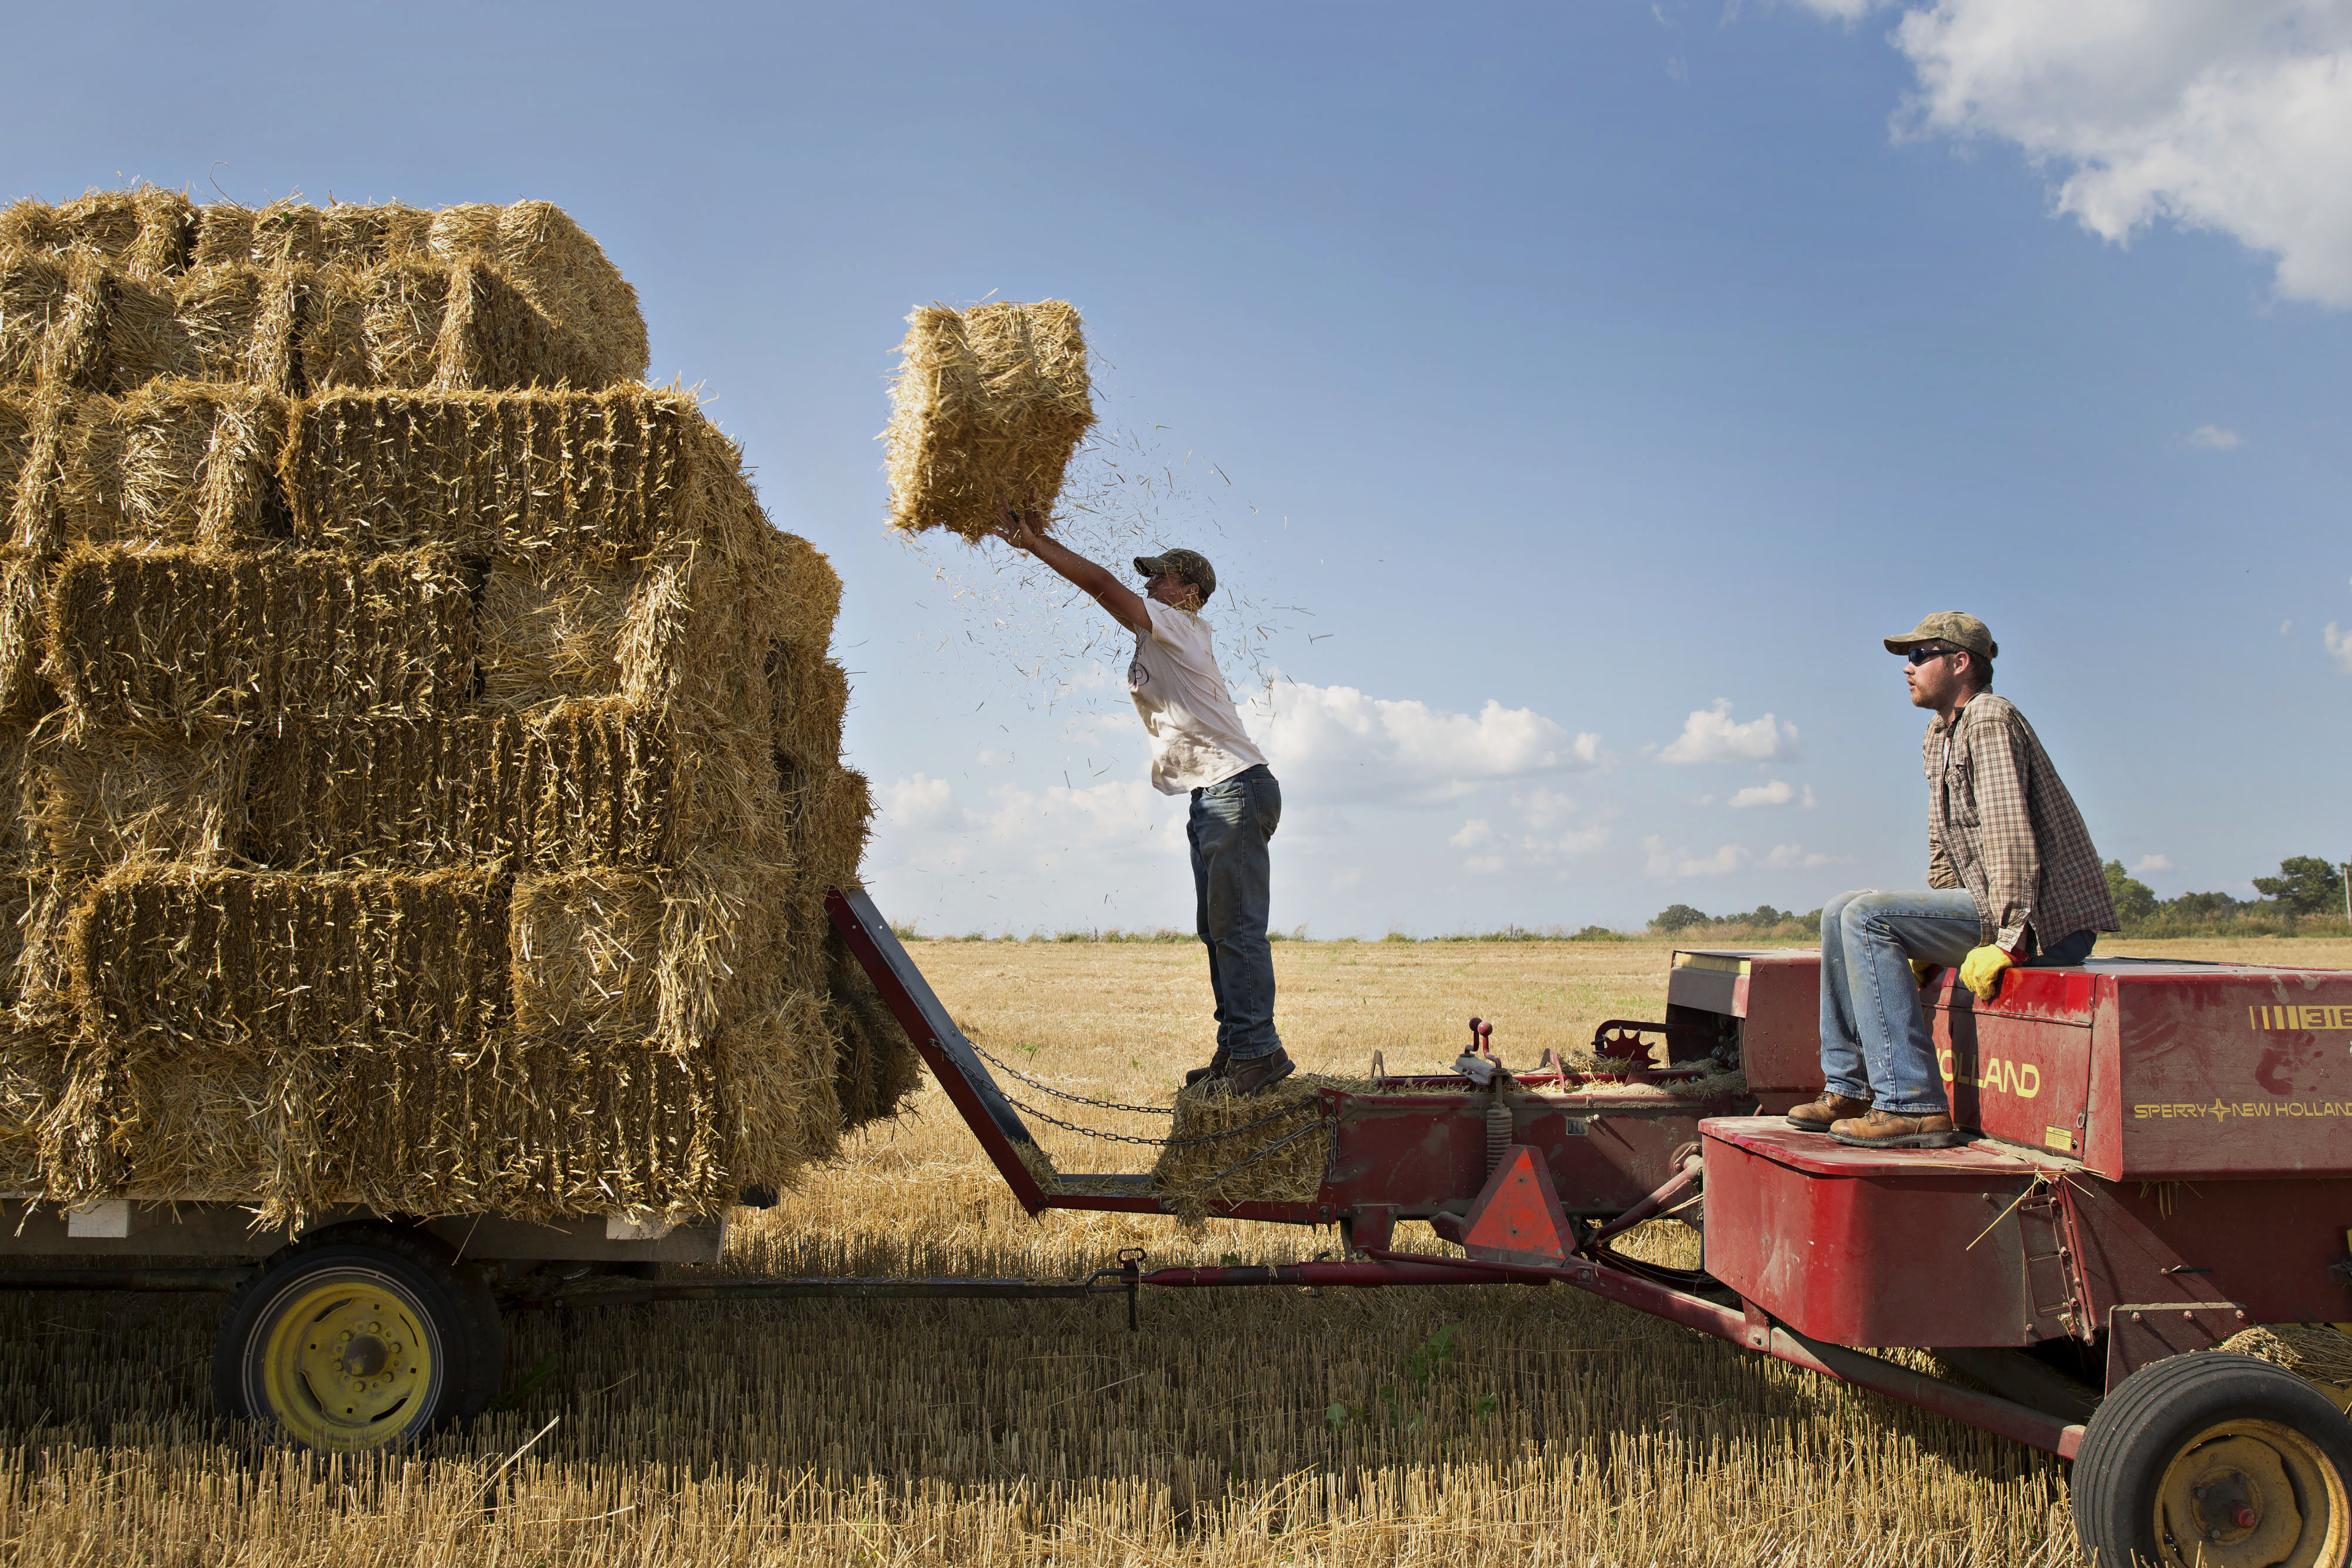 Farm hands stack bales of straw as they are collected in a field of where soft red winter wheat had been harvested in Kirkland, Illinois, U.S., on Thursday, July 23, 2015. Photographer:  Daniel Acker/Bloomberg